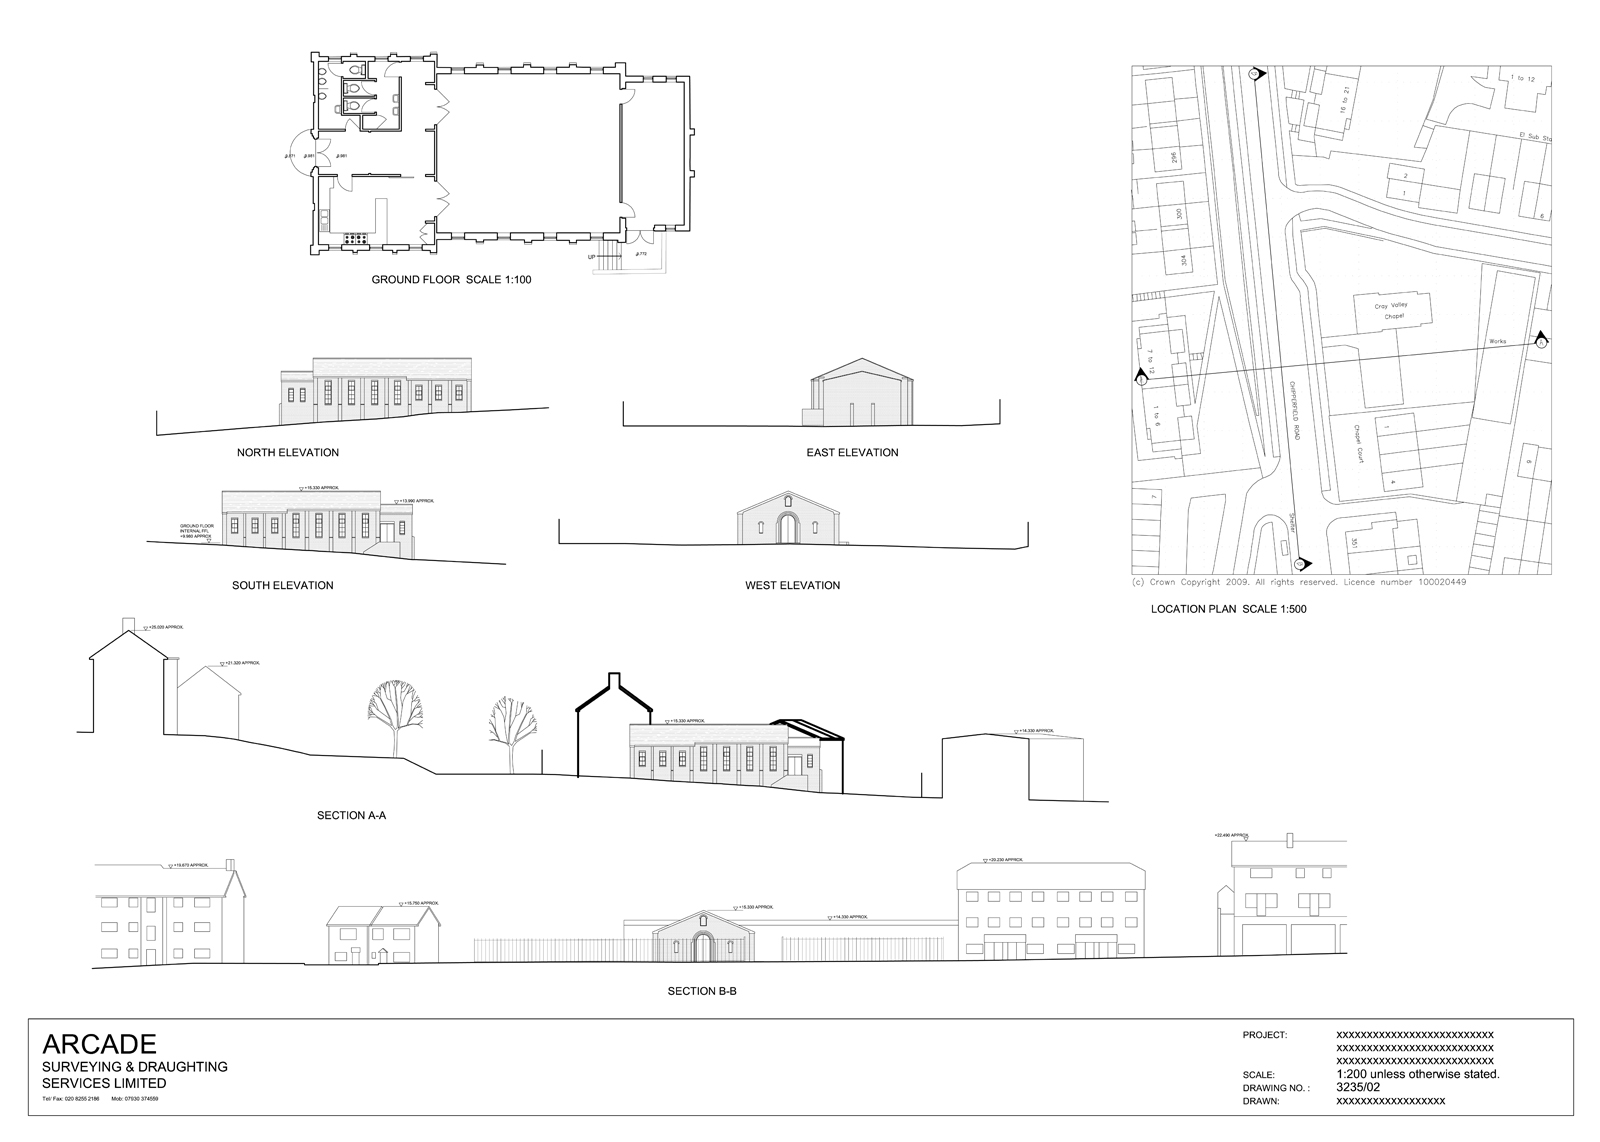 planning drawings for church development